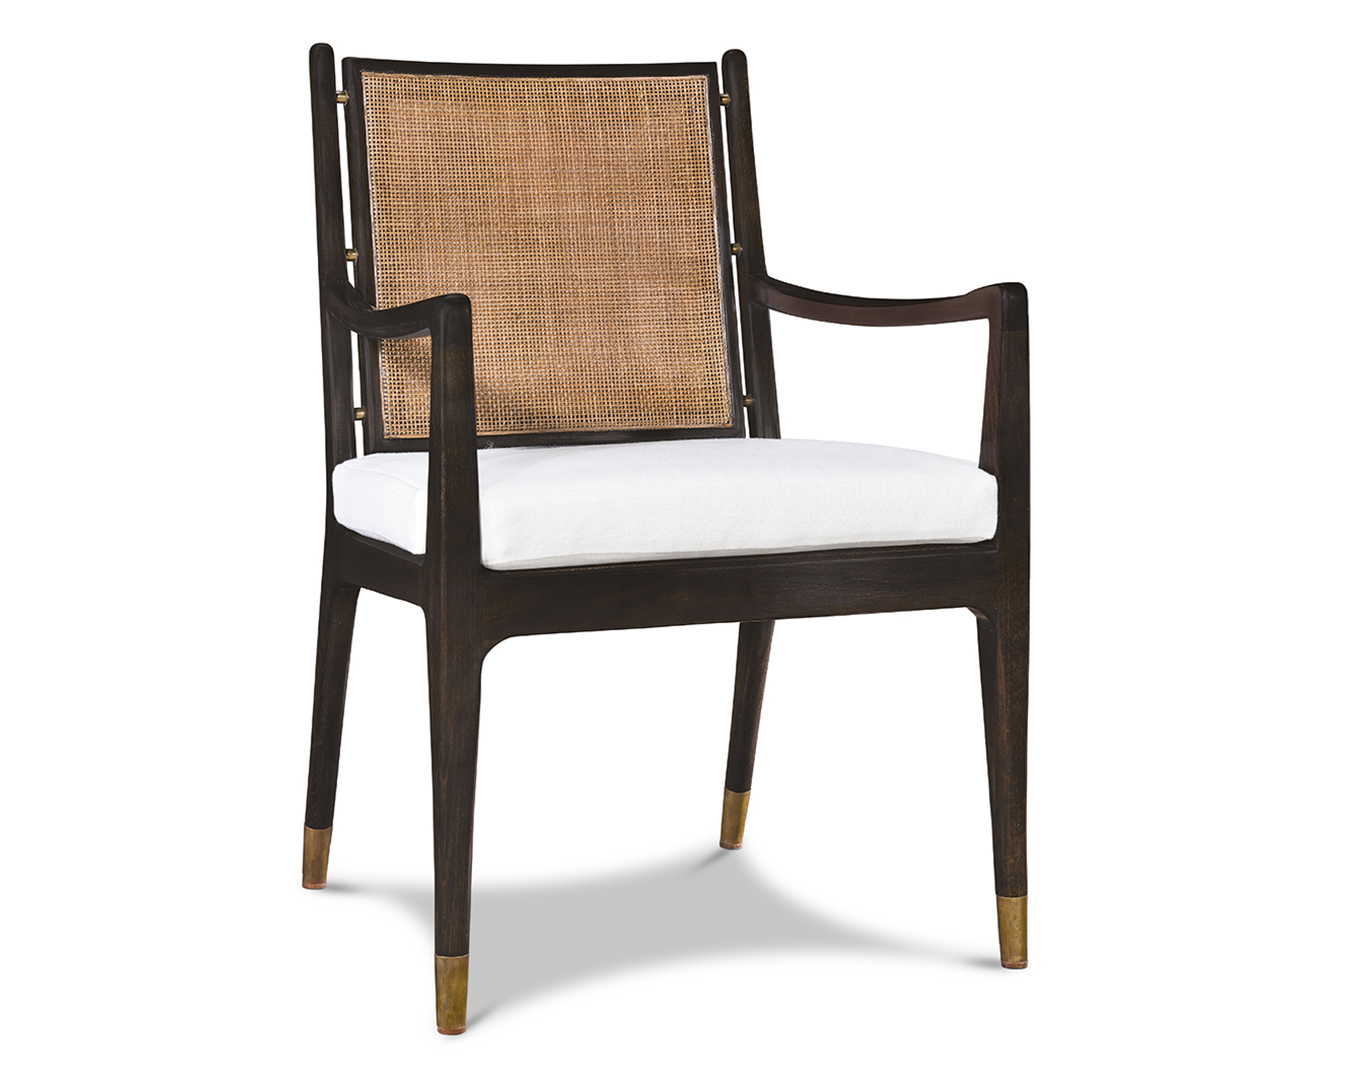 BAHL II ARM CHAIR